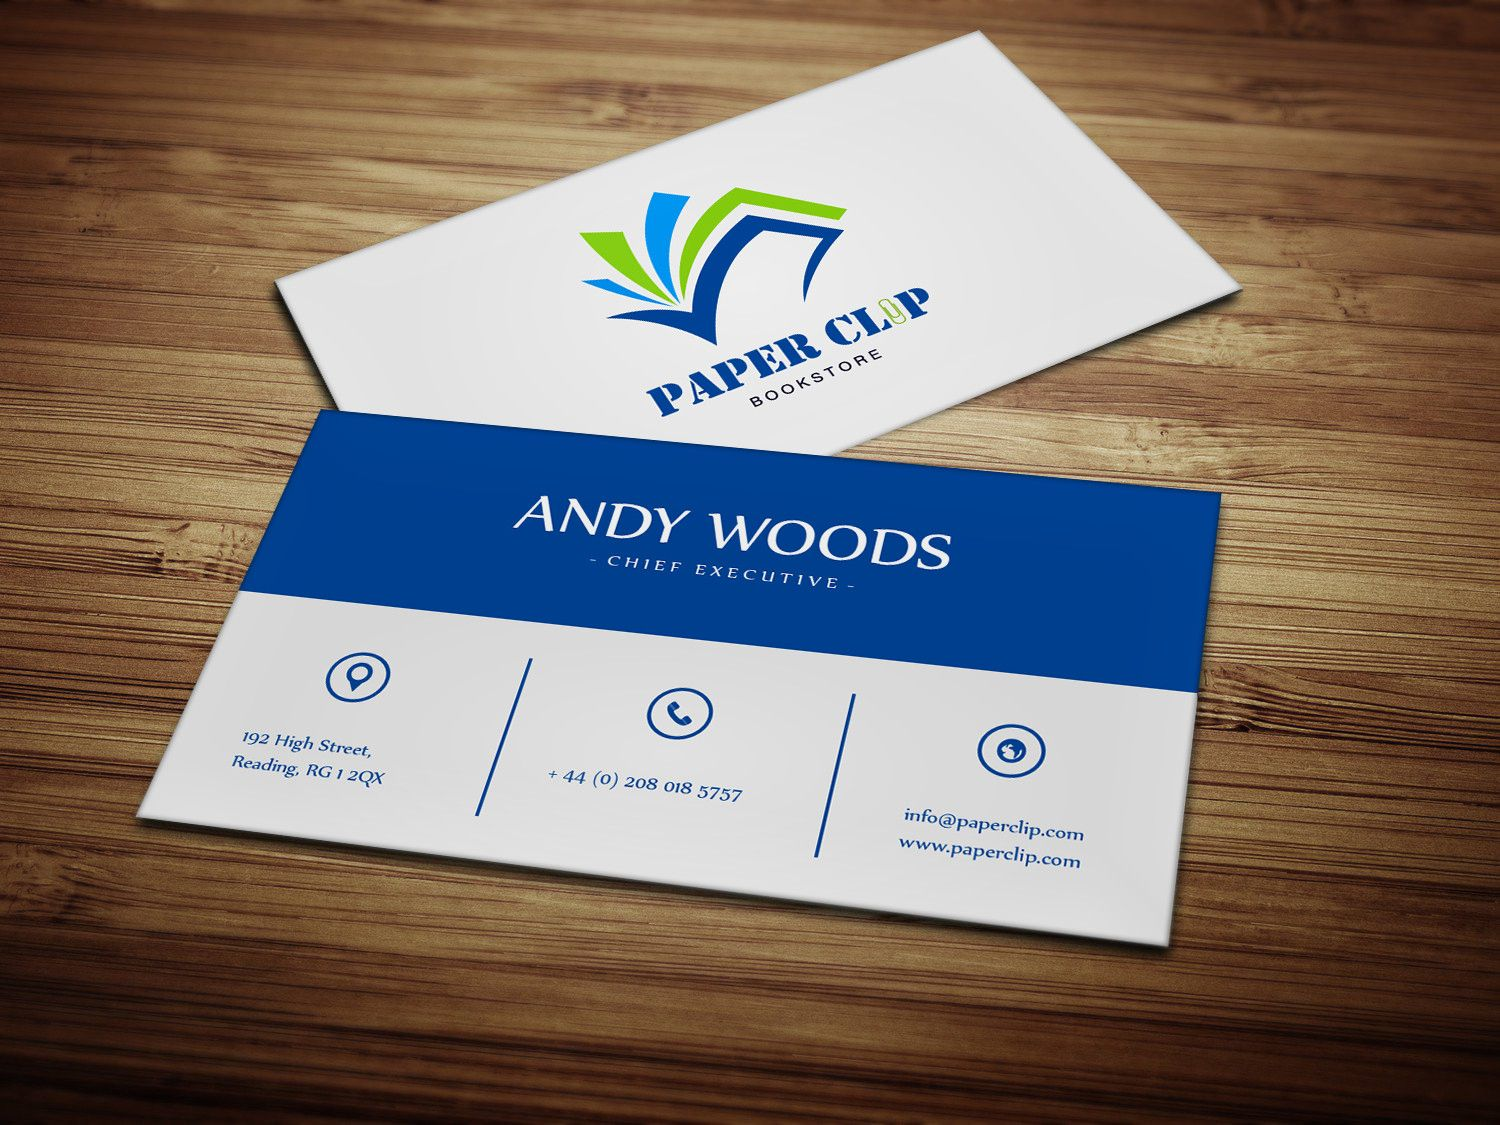 Create modern cut out business cards business cards elegant shirazyasin i will create modern cut out business cards for 15 on fiverr colourmoves Choice Image